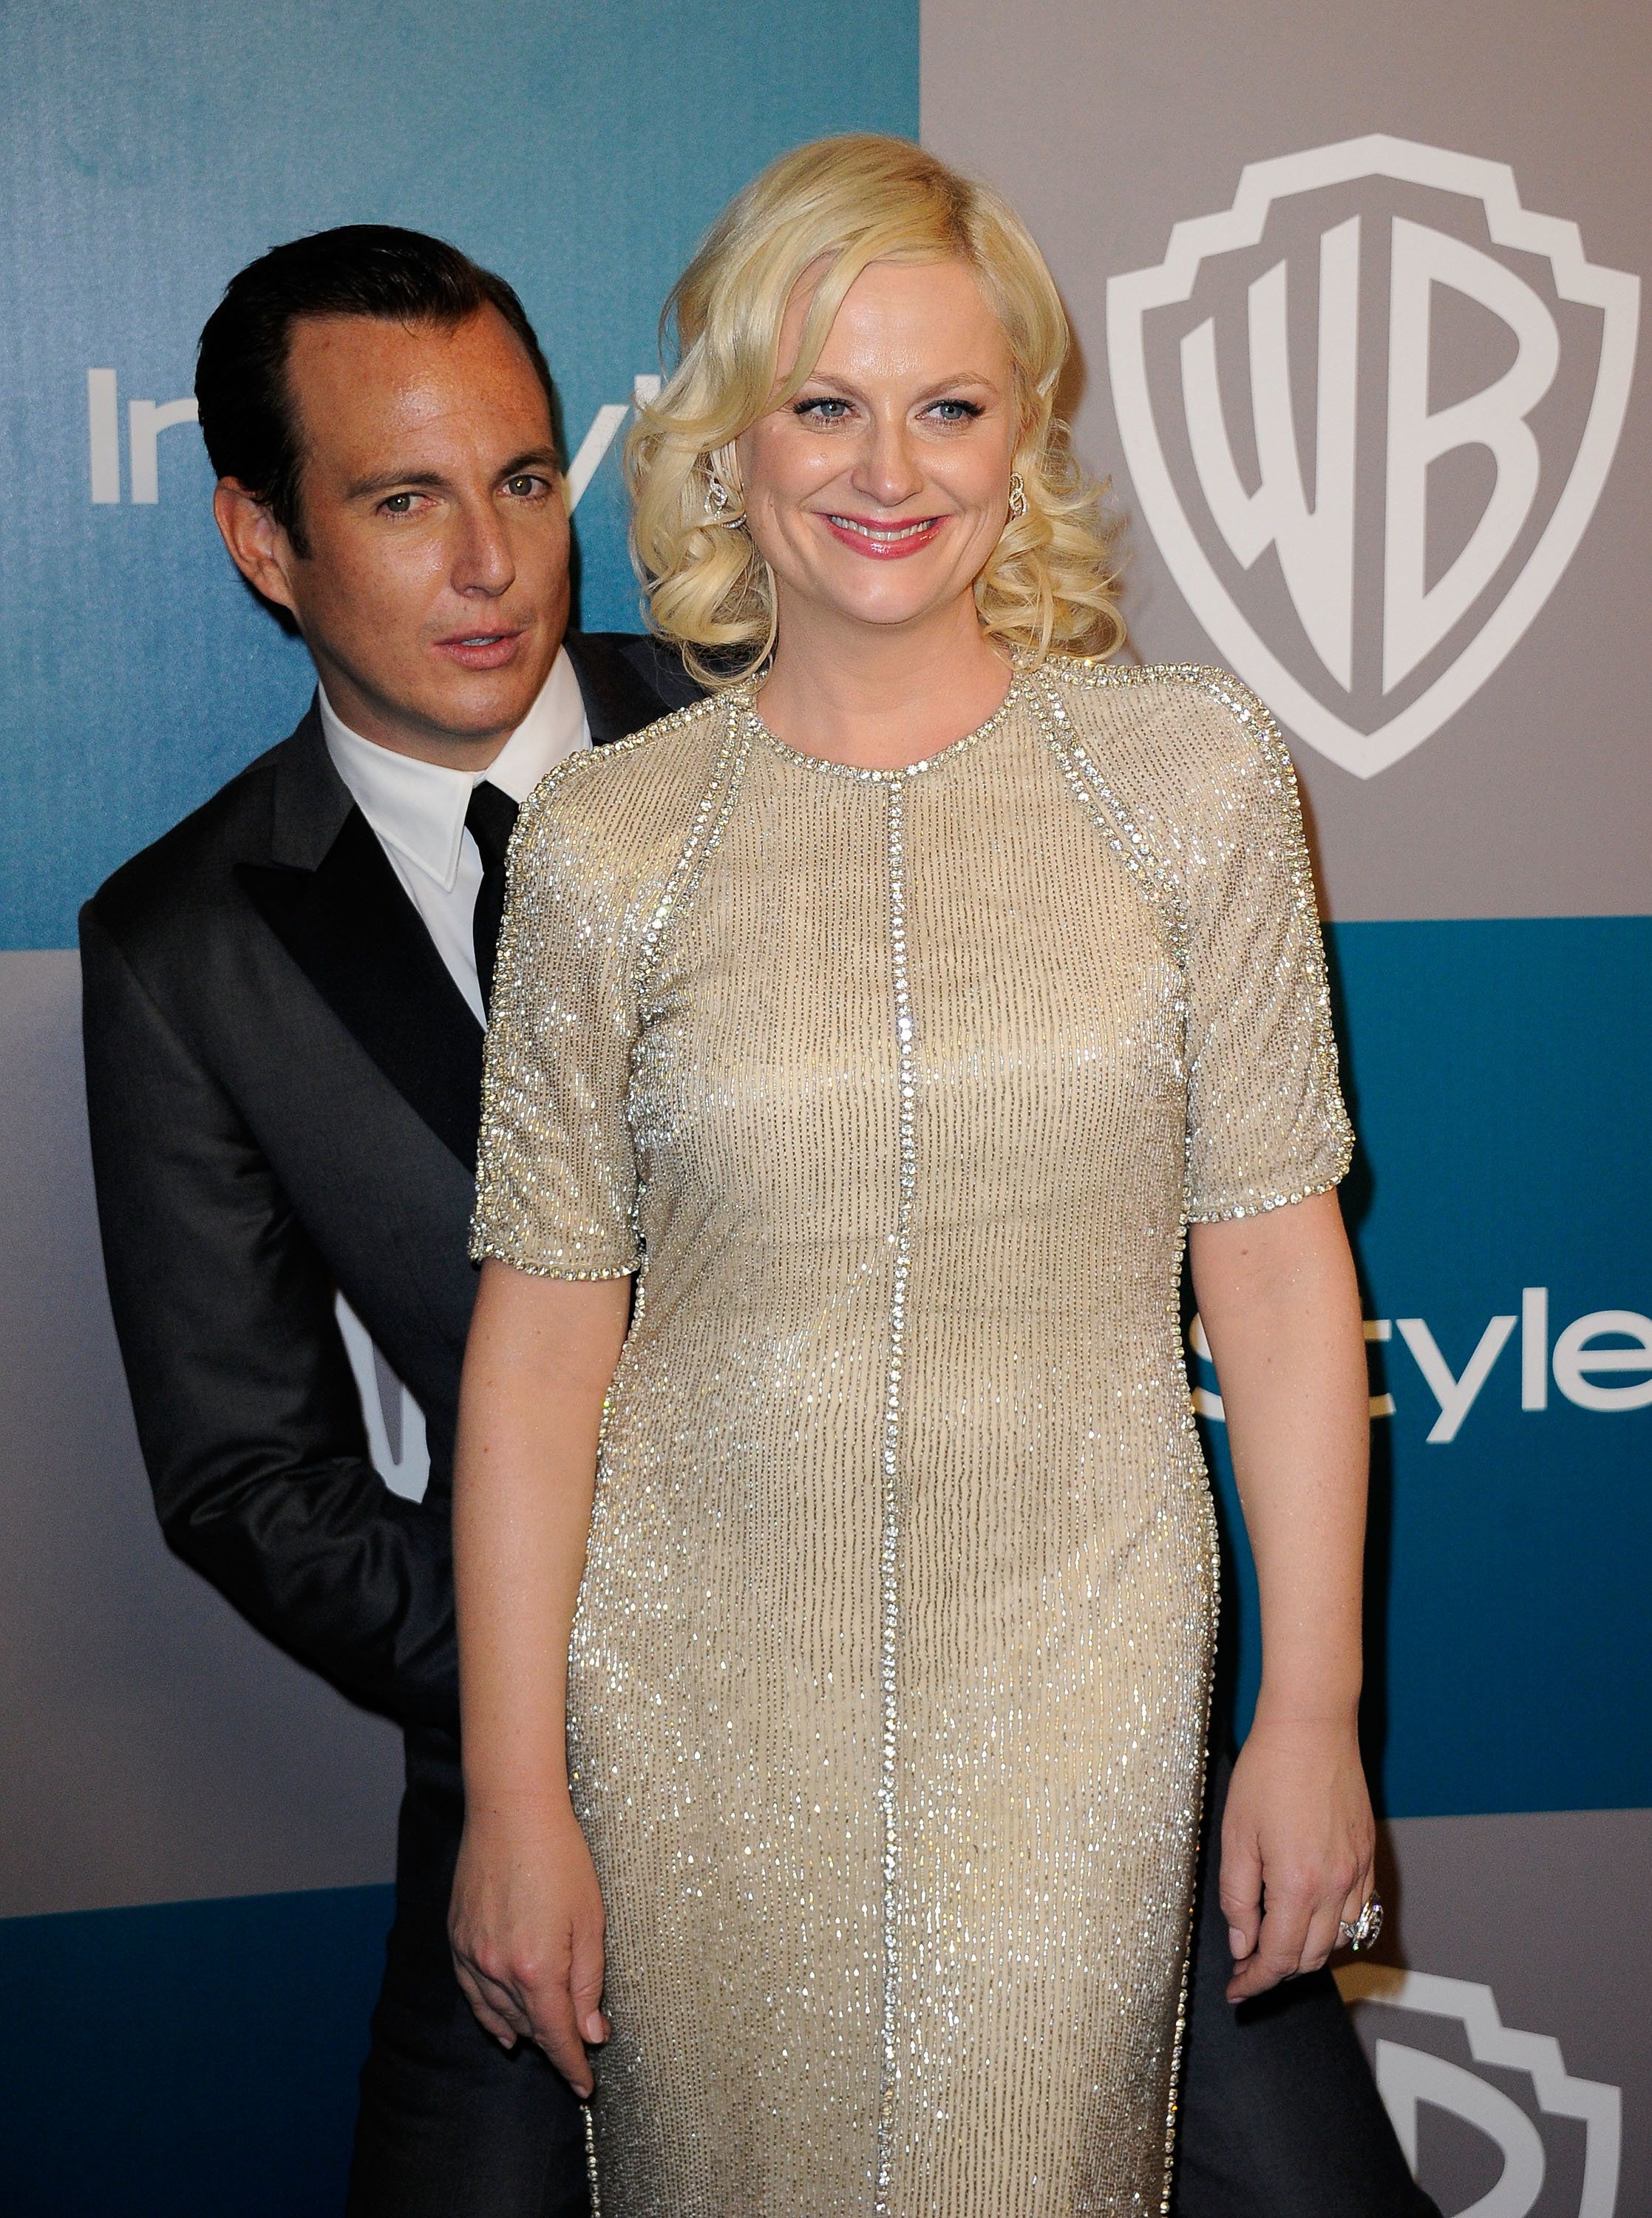 Will Arnett and Amy Poehler at the 2012 InStyle Golden Globe Awards after party at the Beverly Hilton hotel.